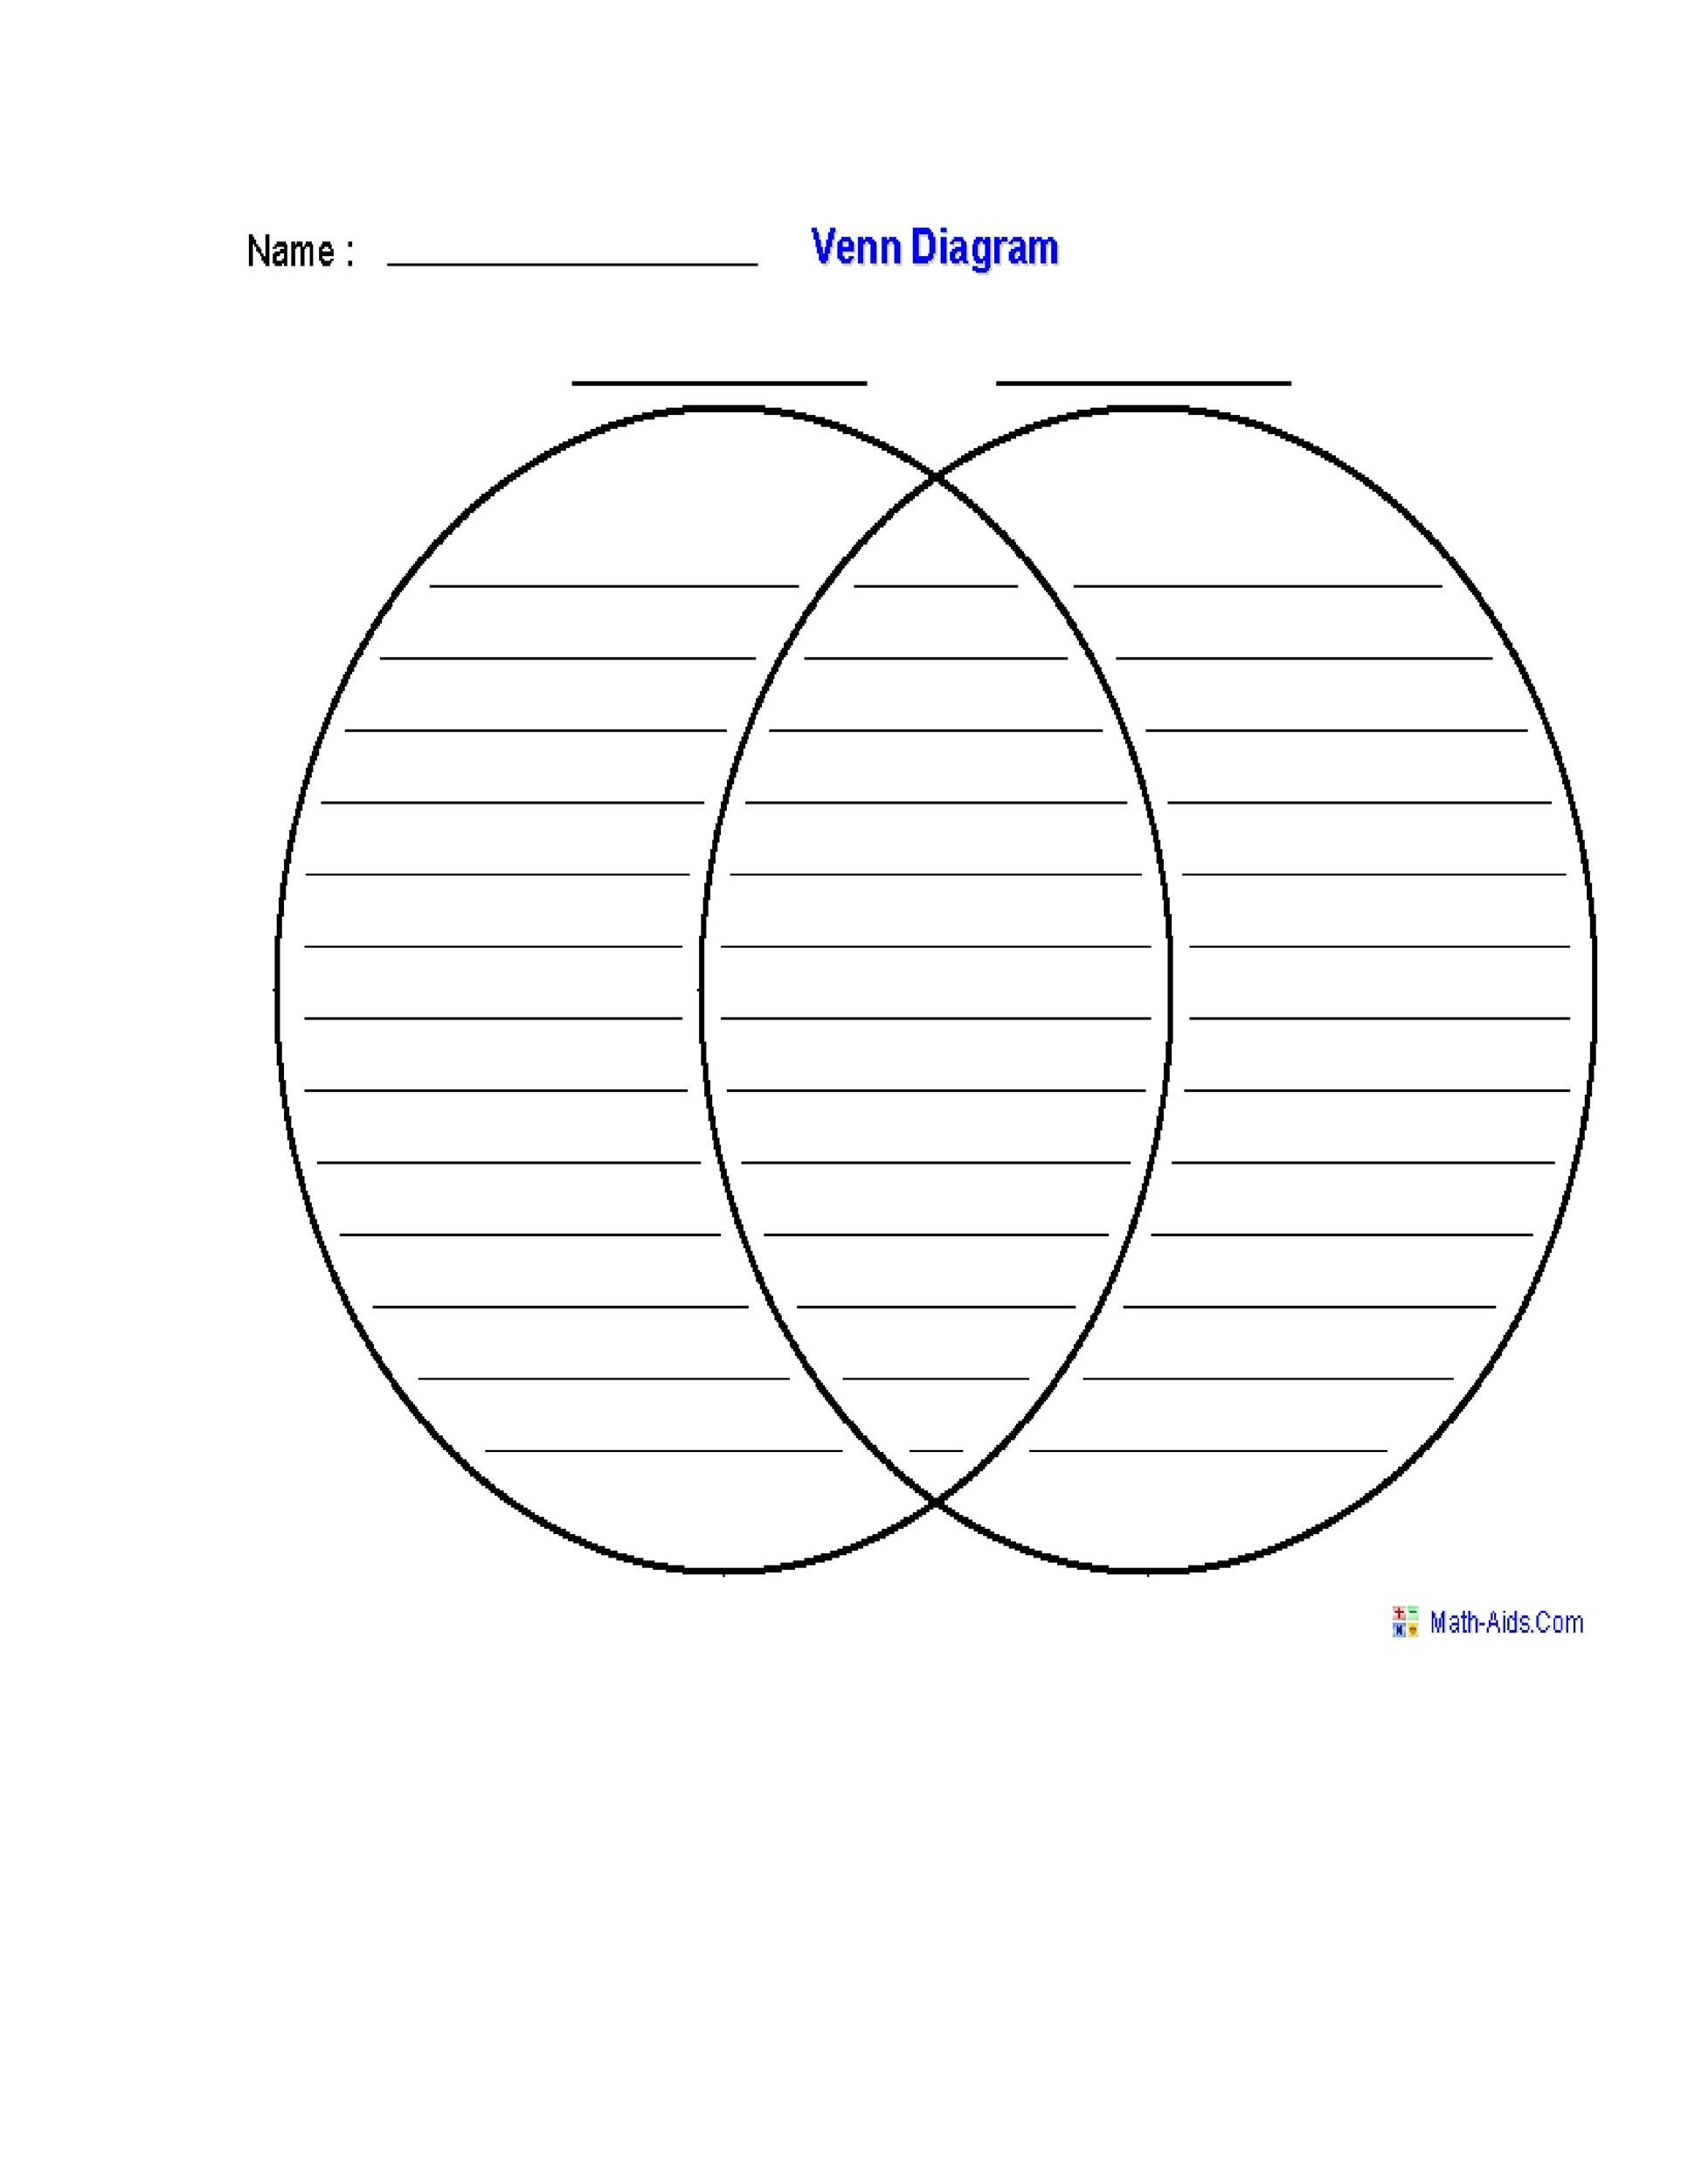 40 free venn diagram templates word pdf template lab printable venn diagram template 32 pooptronica Gallery